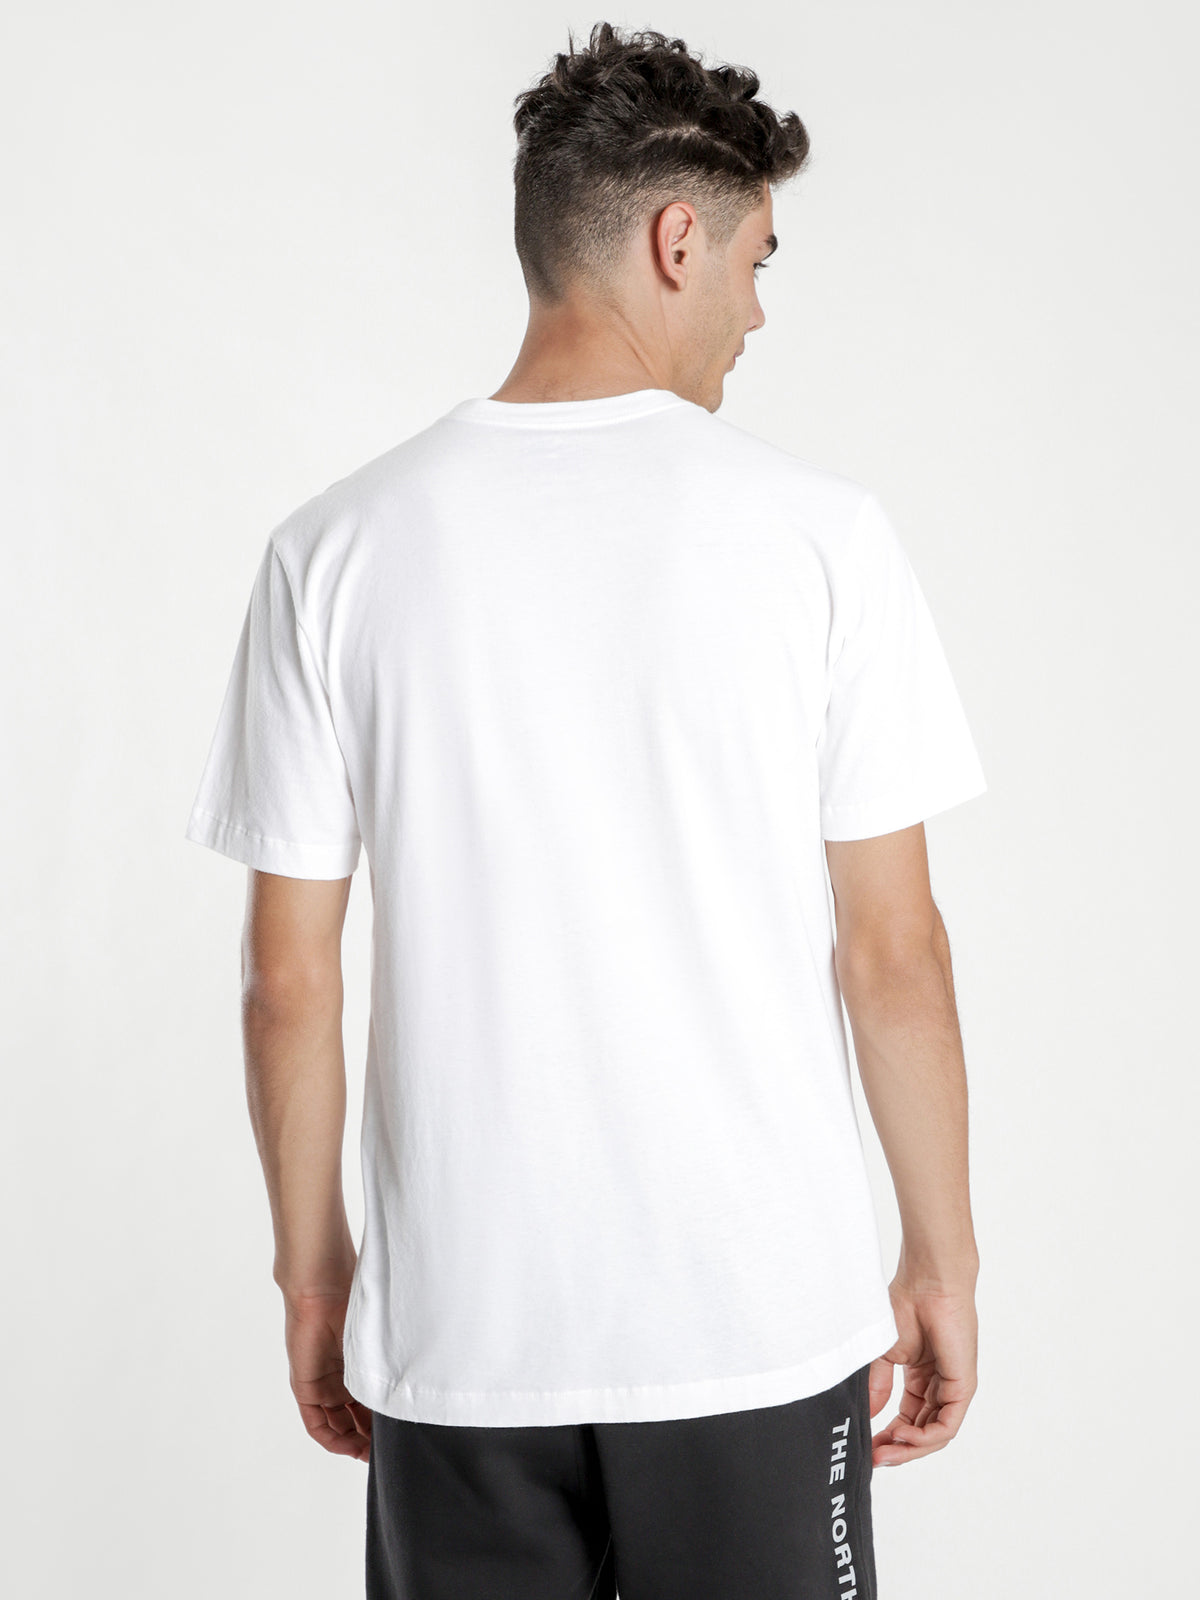 Cotton Short Sleeve T-Shirt in White & Red